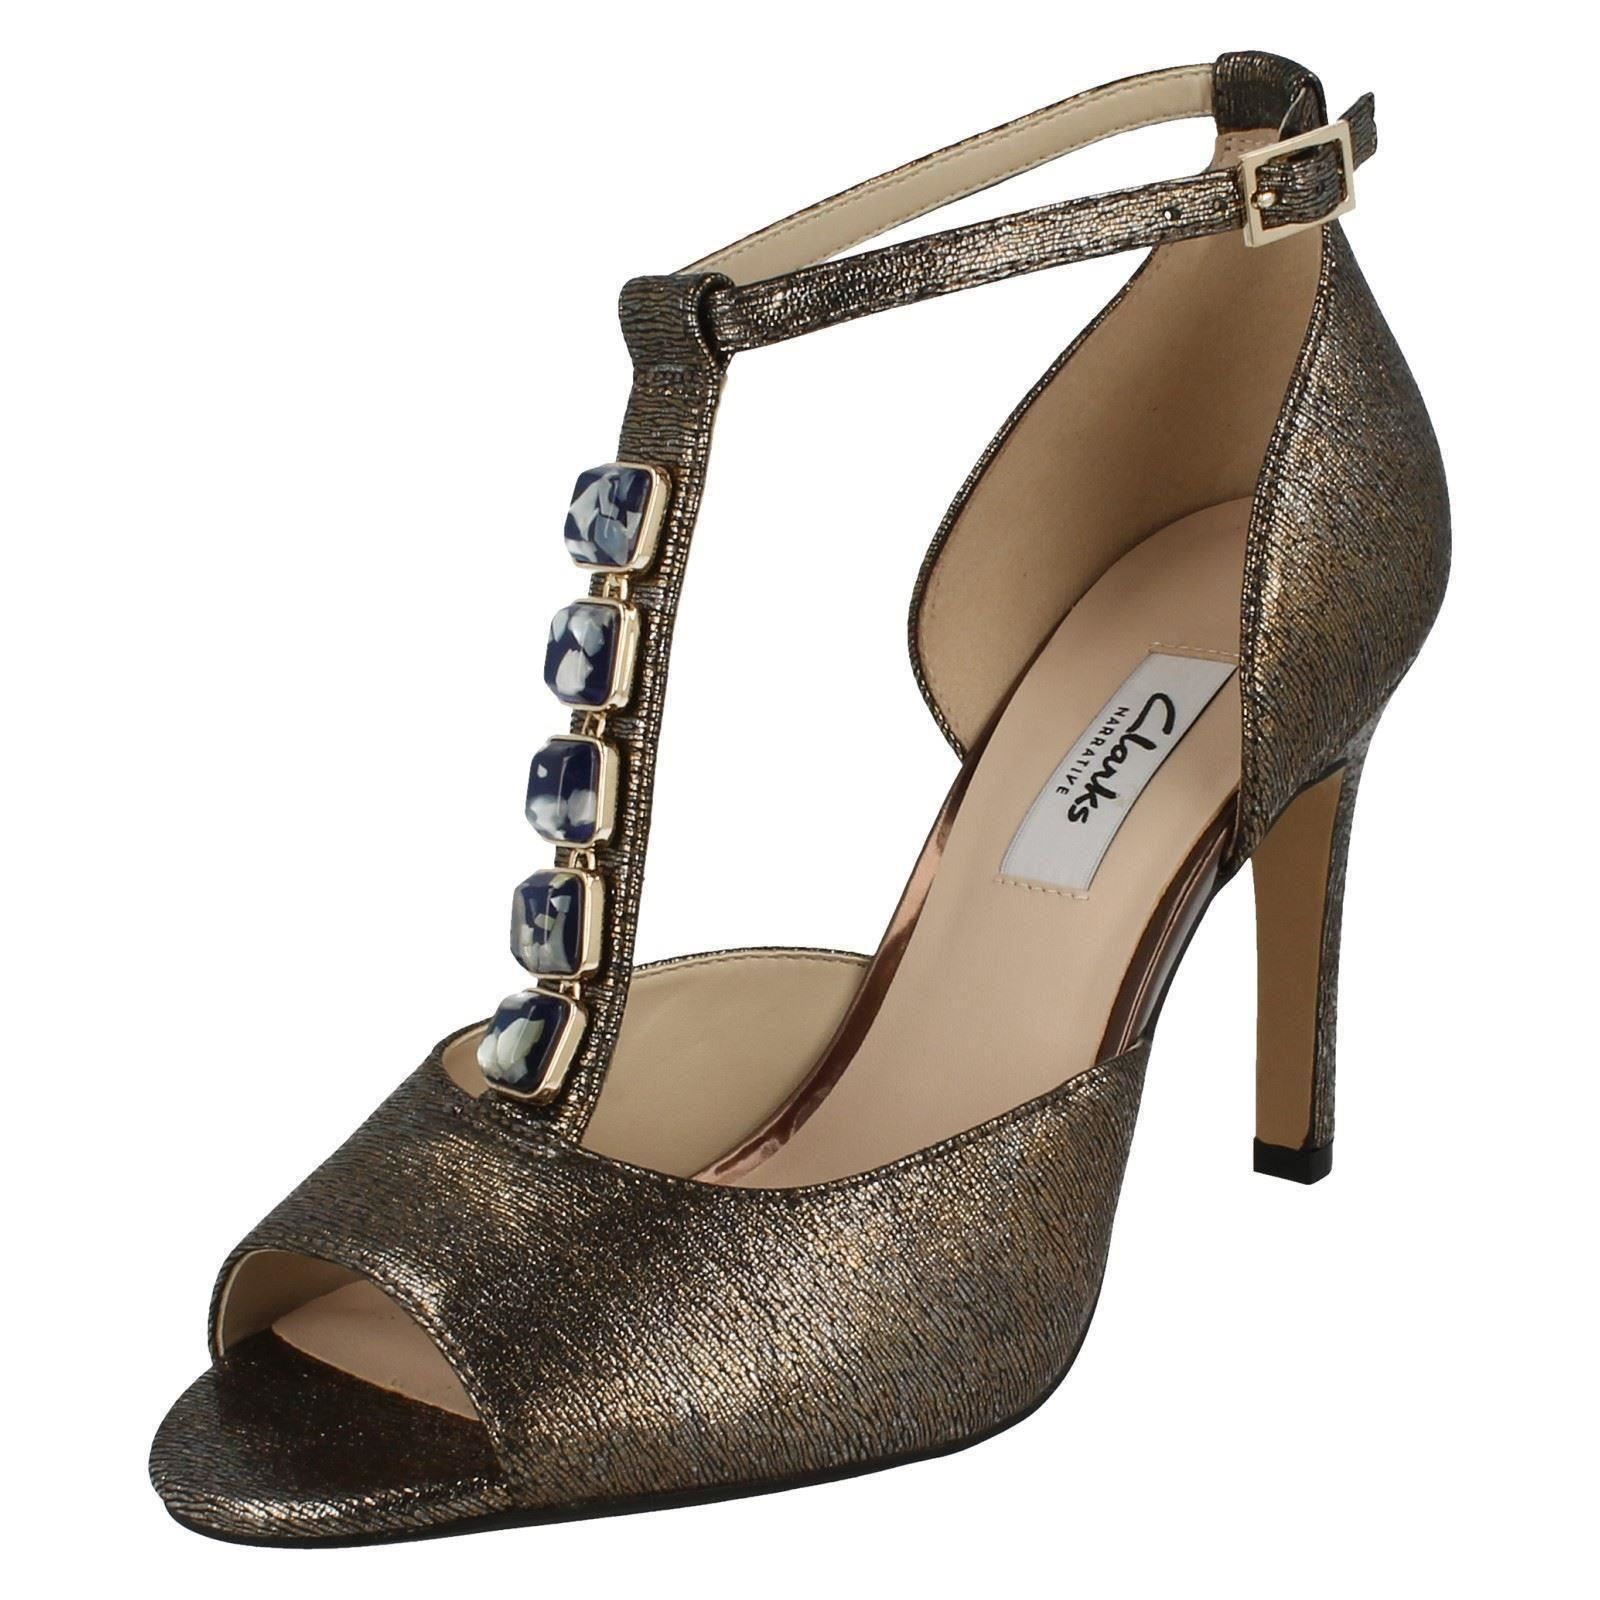 ad9a8f51e7e170 Ladies Clarks T-bar Occasion Wear Sandals Curtain Crush Bronze Metallic 8  UK D. About this product. Picture 1 of 10  Picture 2 of 10 ...